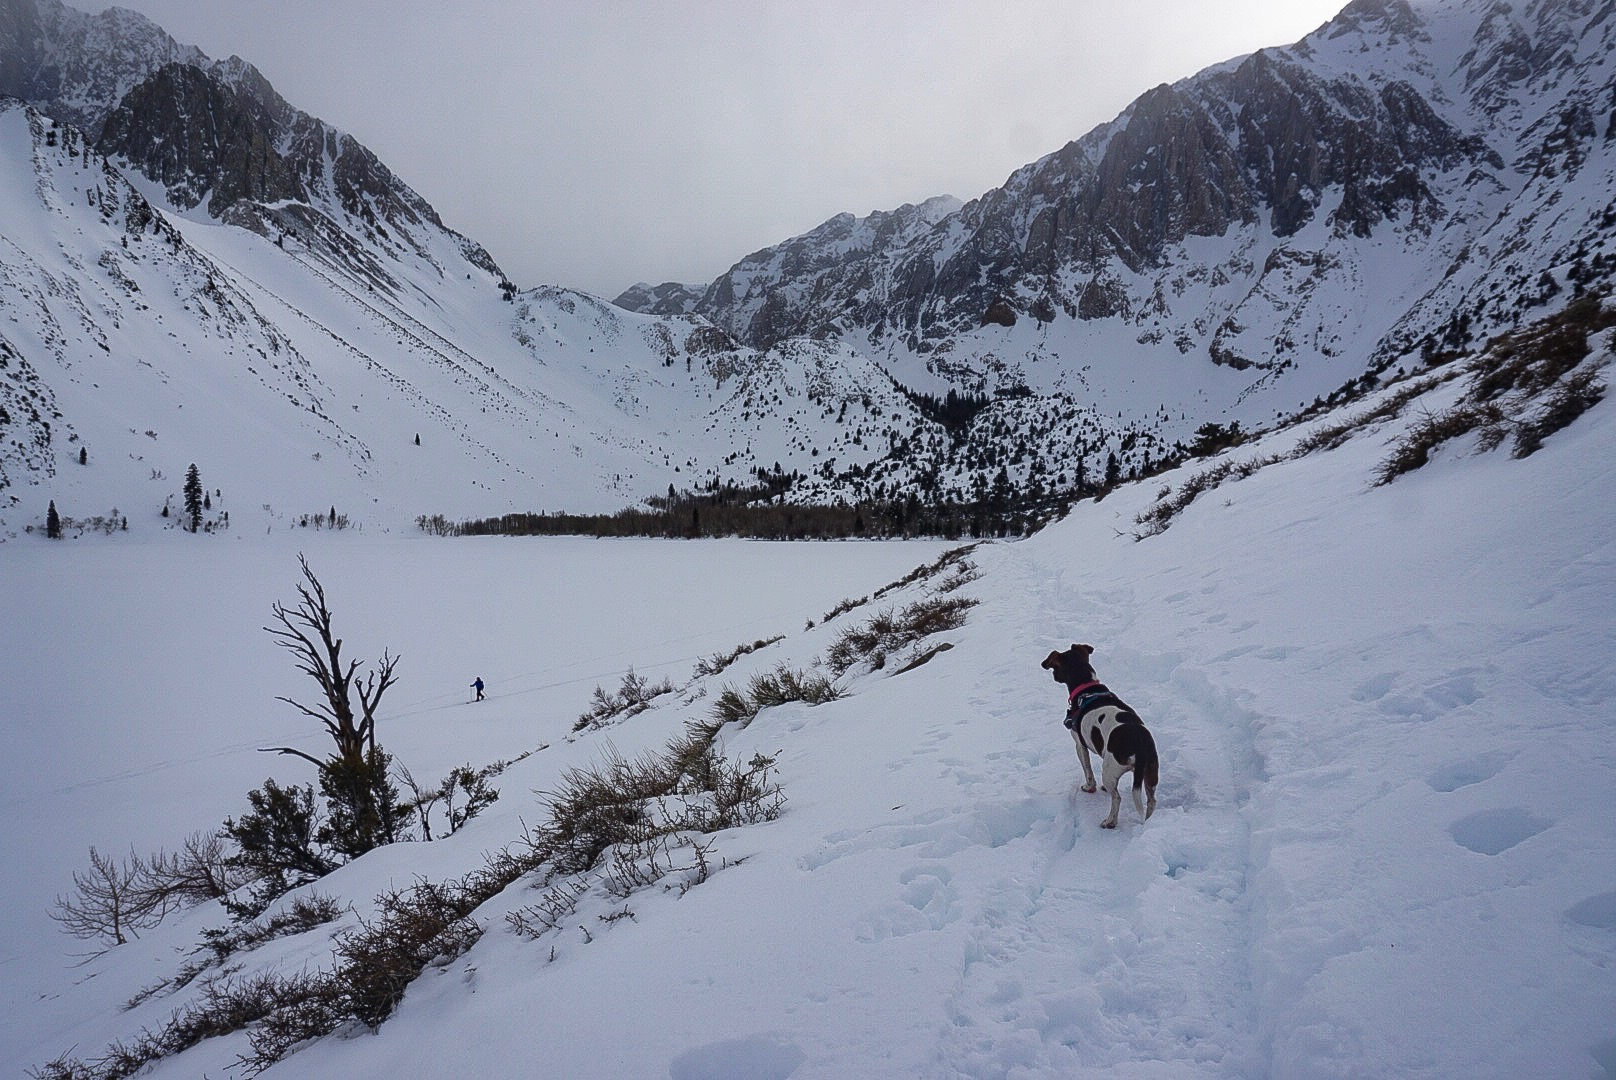 Moo checking out Convict Lake, which is a 2.5 mile beautiful loop a few miles south of Mammoth off the 395. Great for snowshoeing, backcountry skiing and cross country skiing.